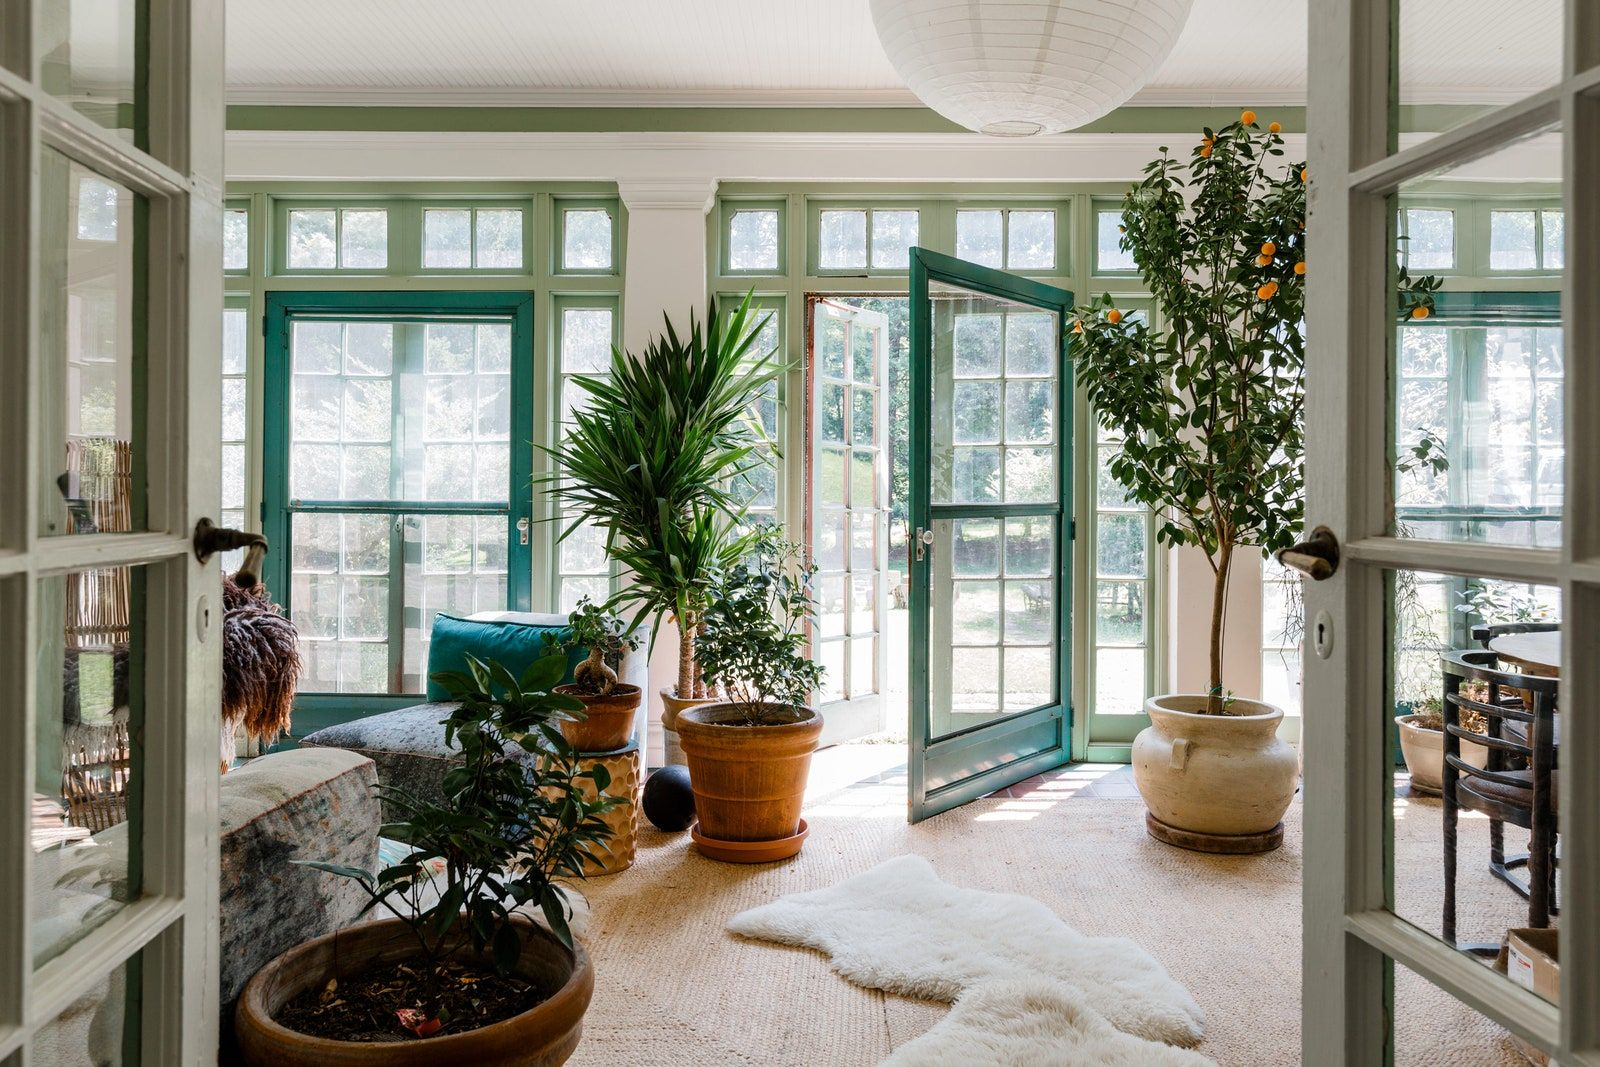 An Italianate Home In Nyack New York Full Of Energy And Art In 2020 Home Architectural Digest Georgian Interiors